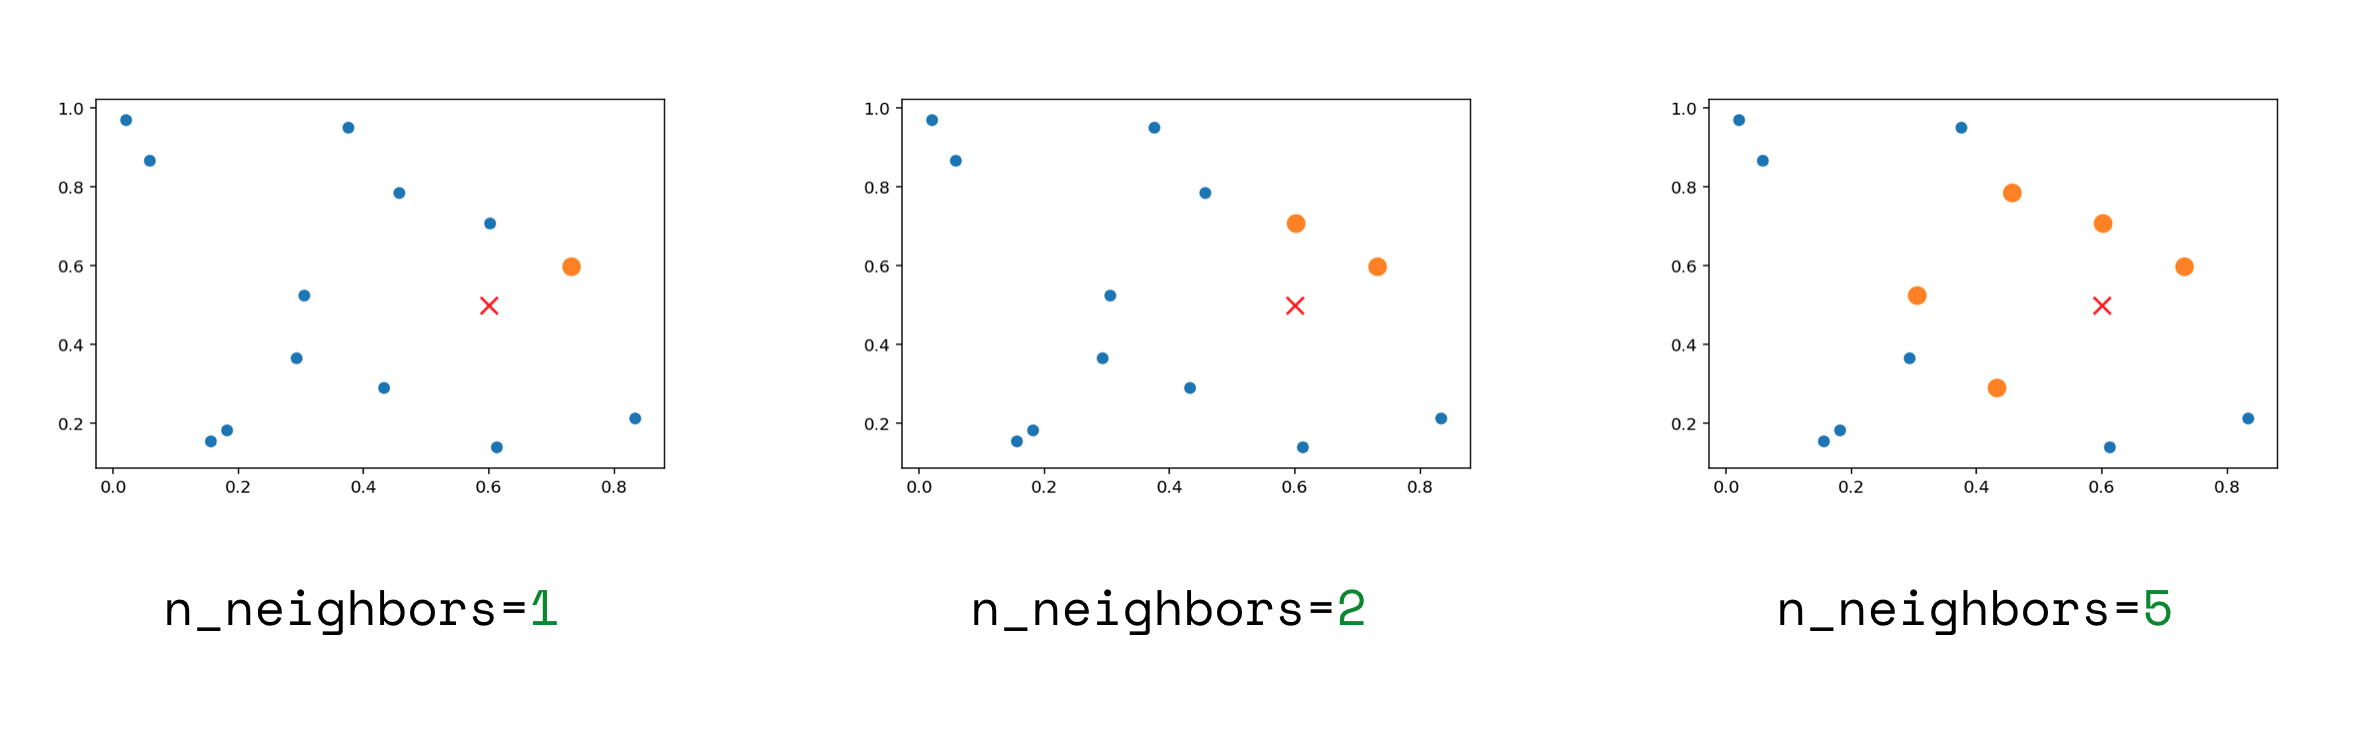 NLP using Word Vectors with Spacy - CLDSPN | Kaggle